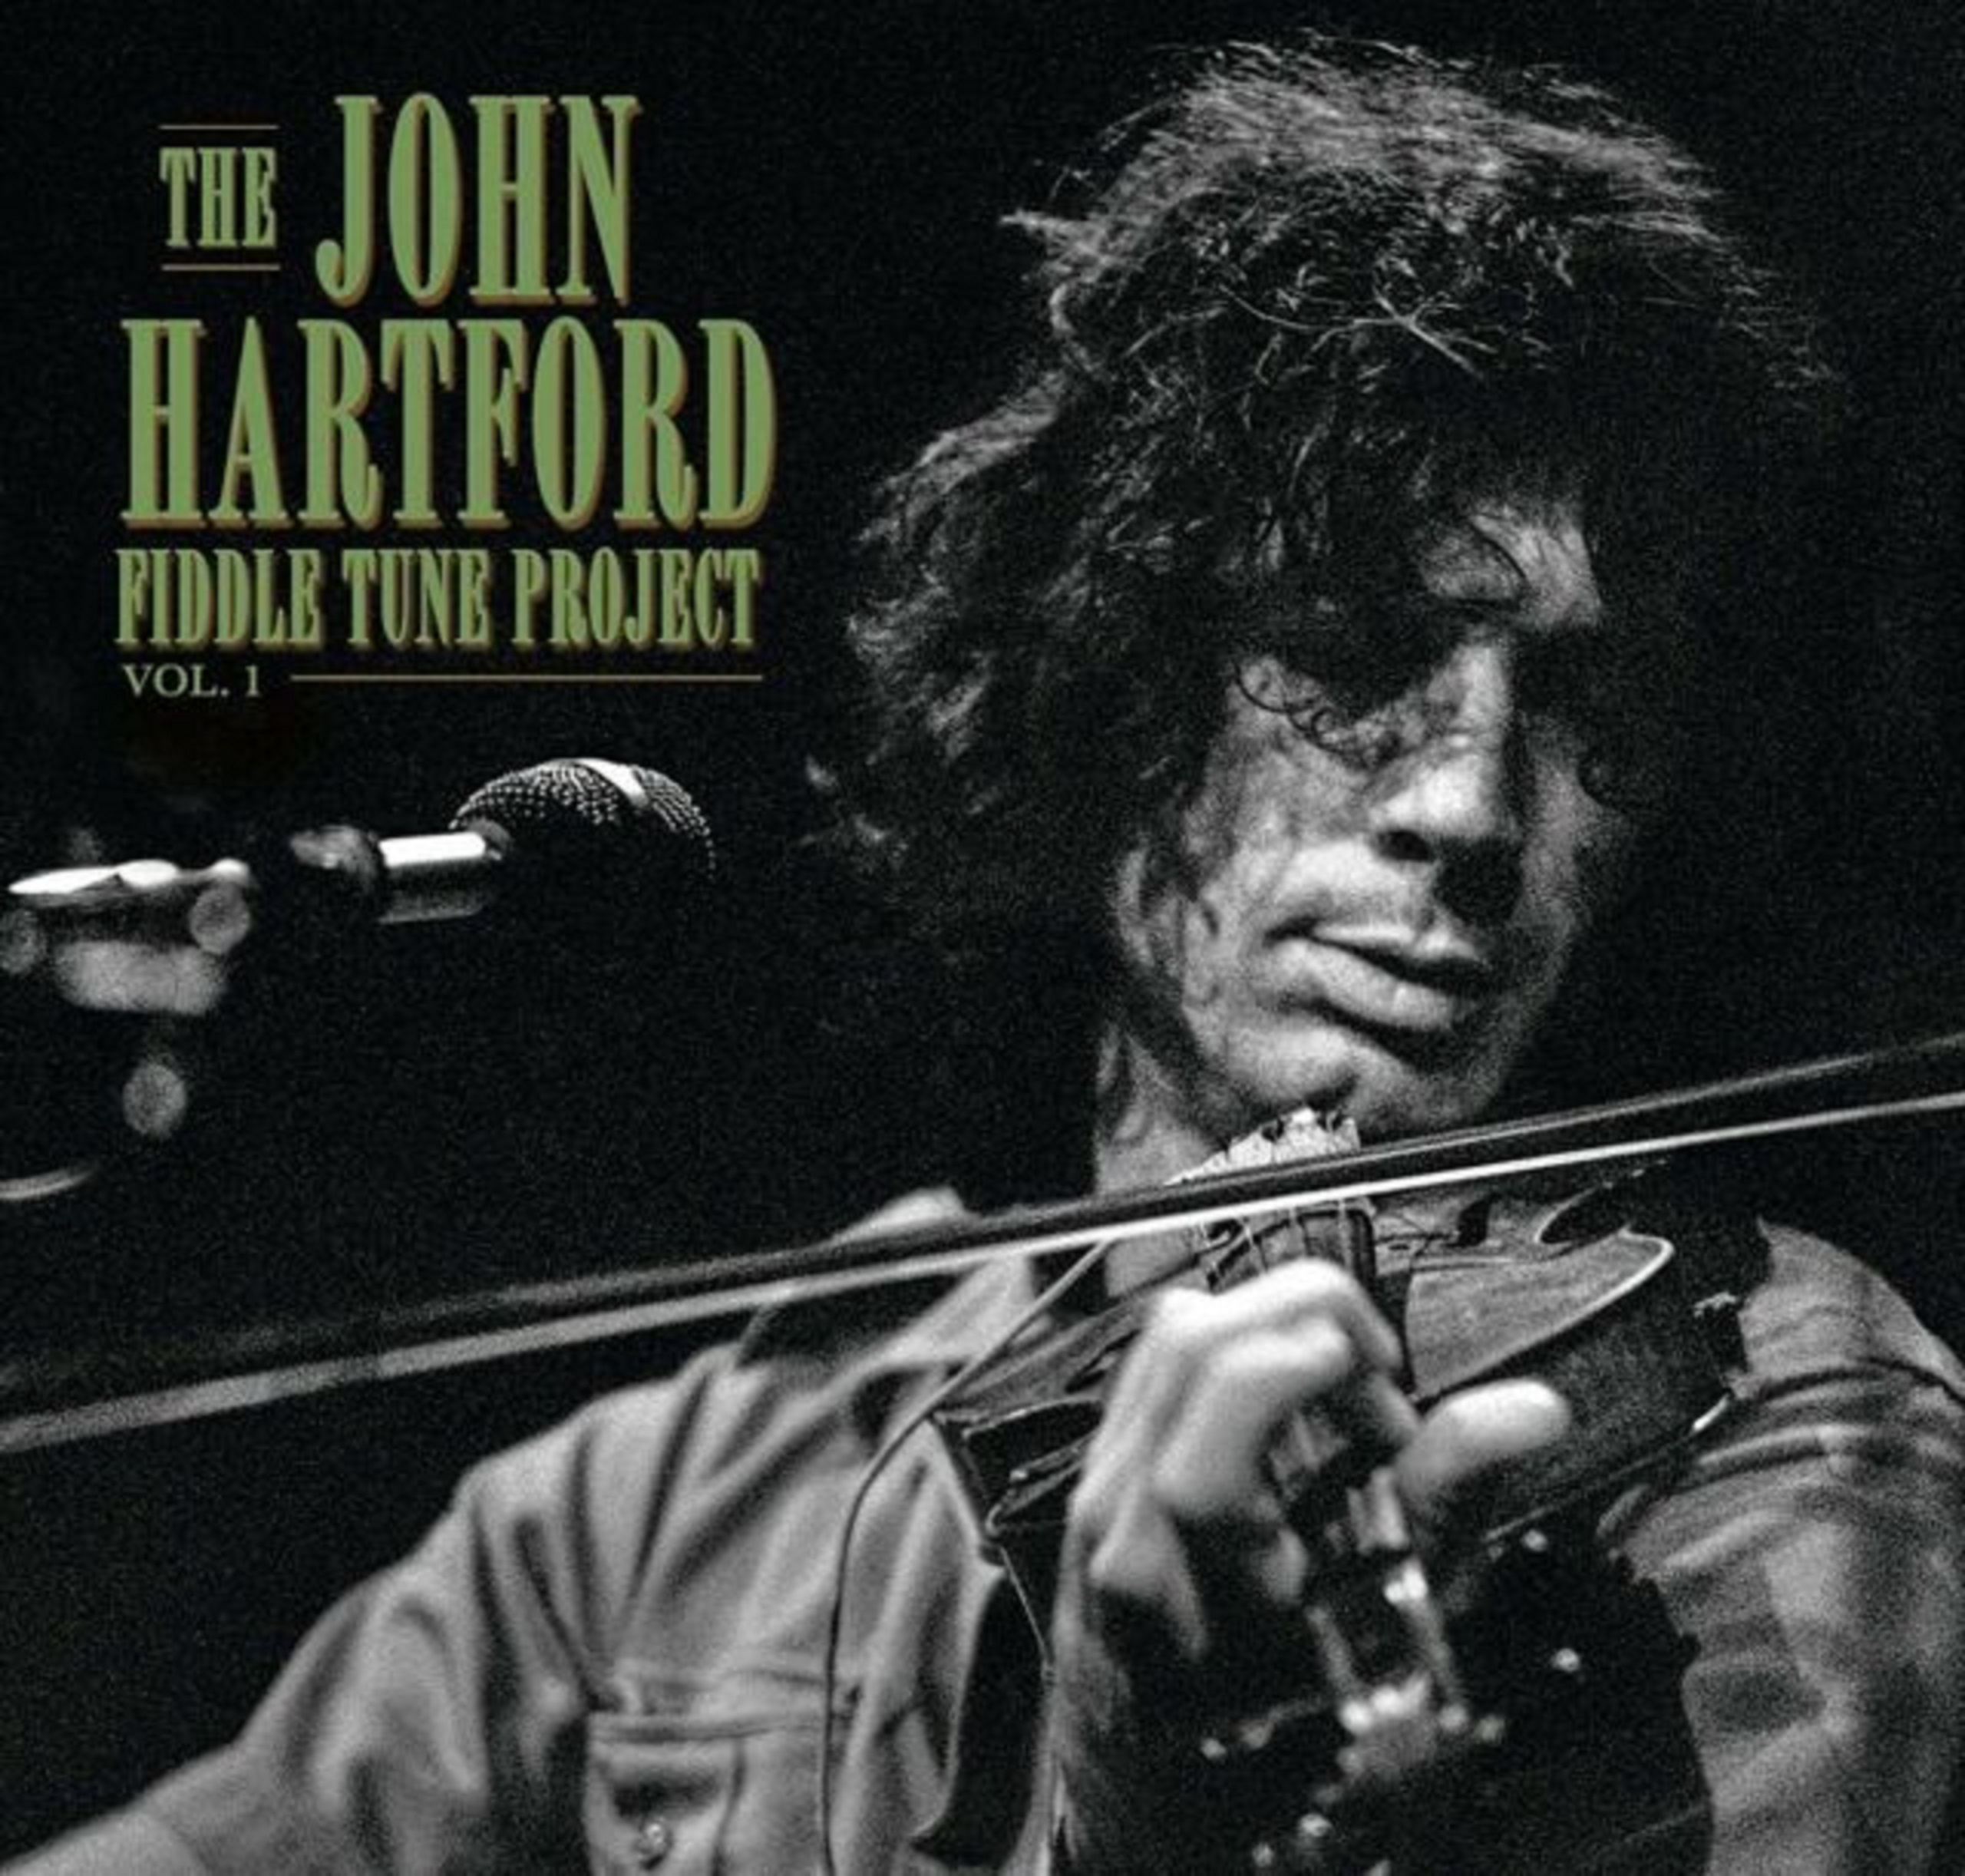 The John Hartford Fiddle Tune Project, Volume 1 Available Everywhere June 26th